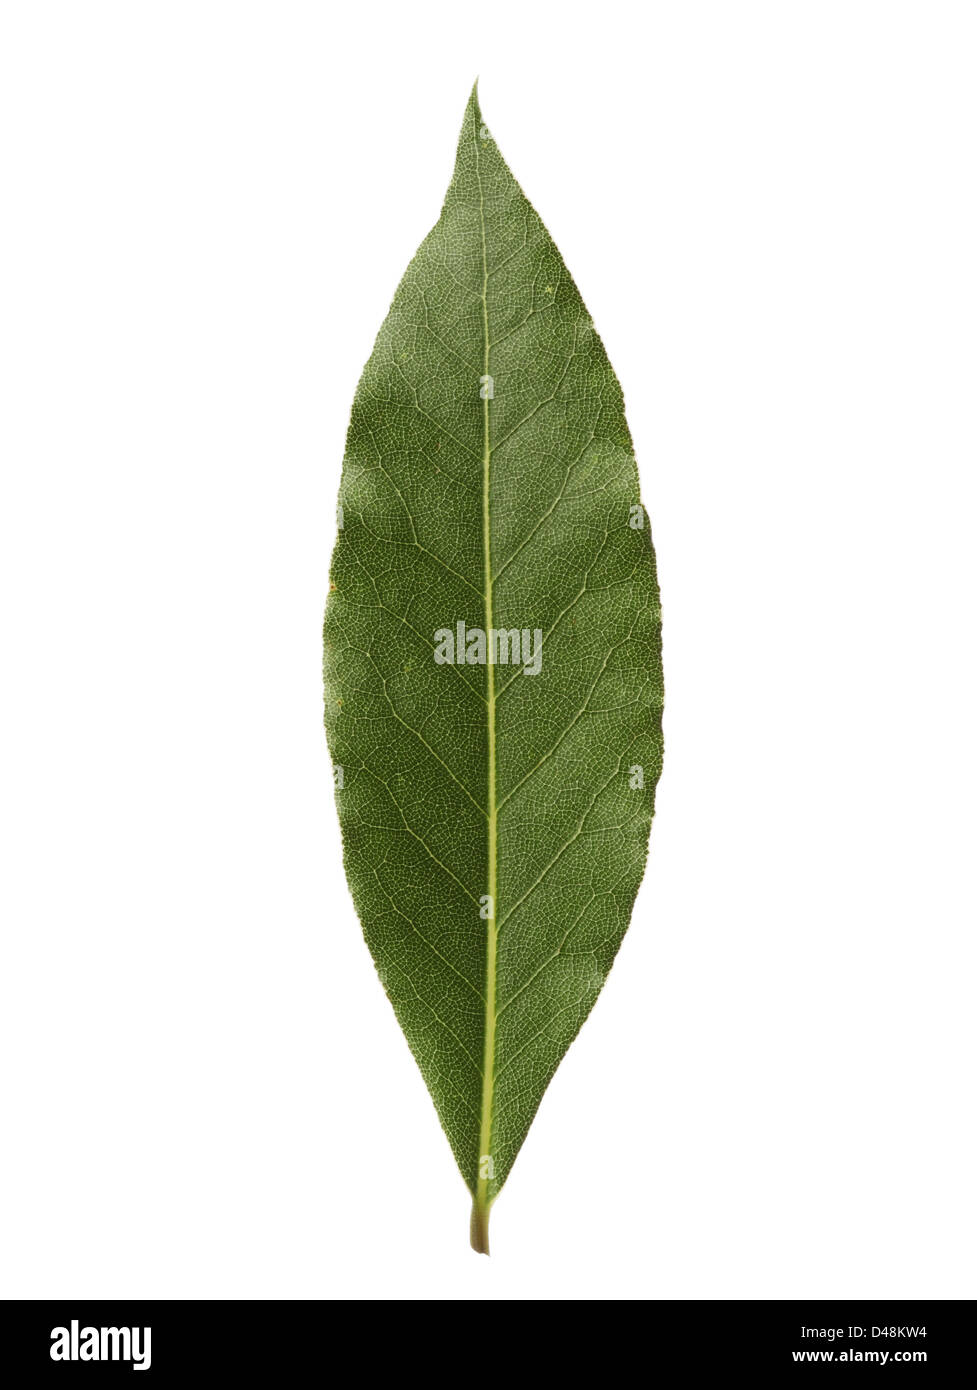 Single bay leaf isolated on white background - Stock Image